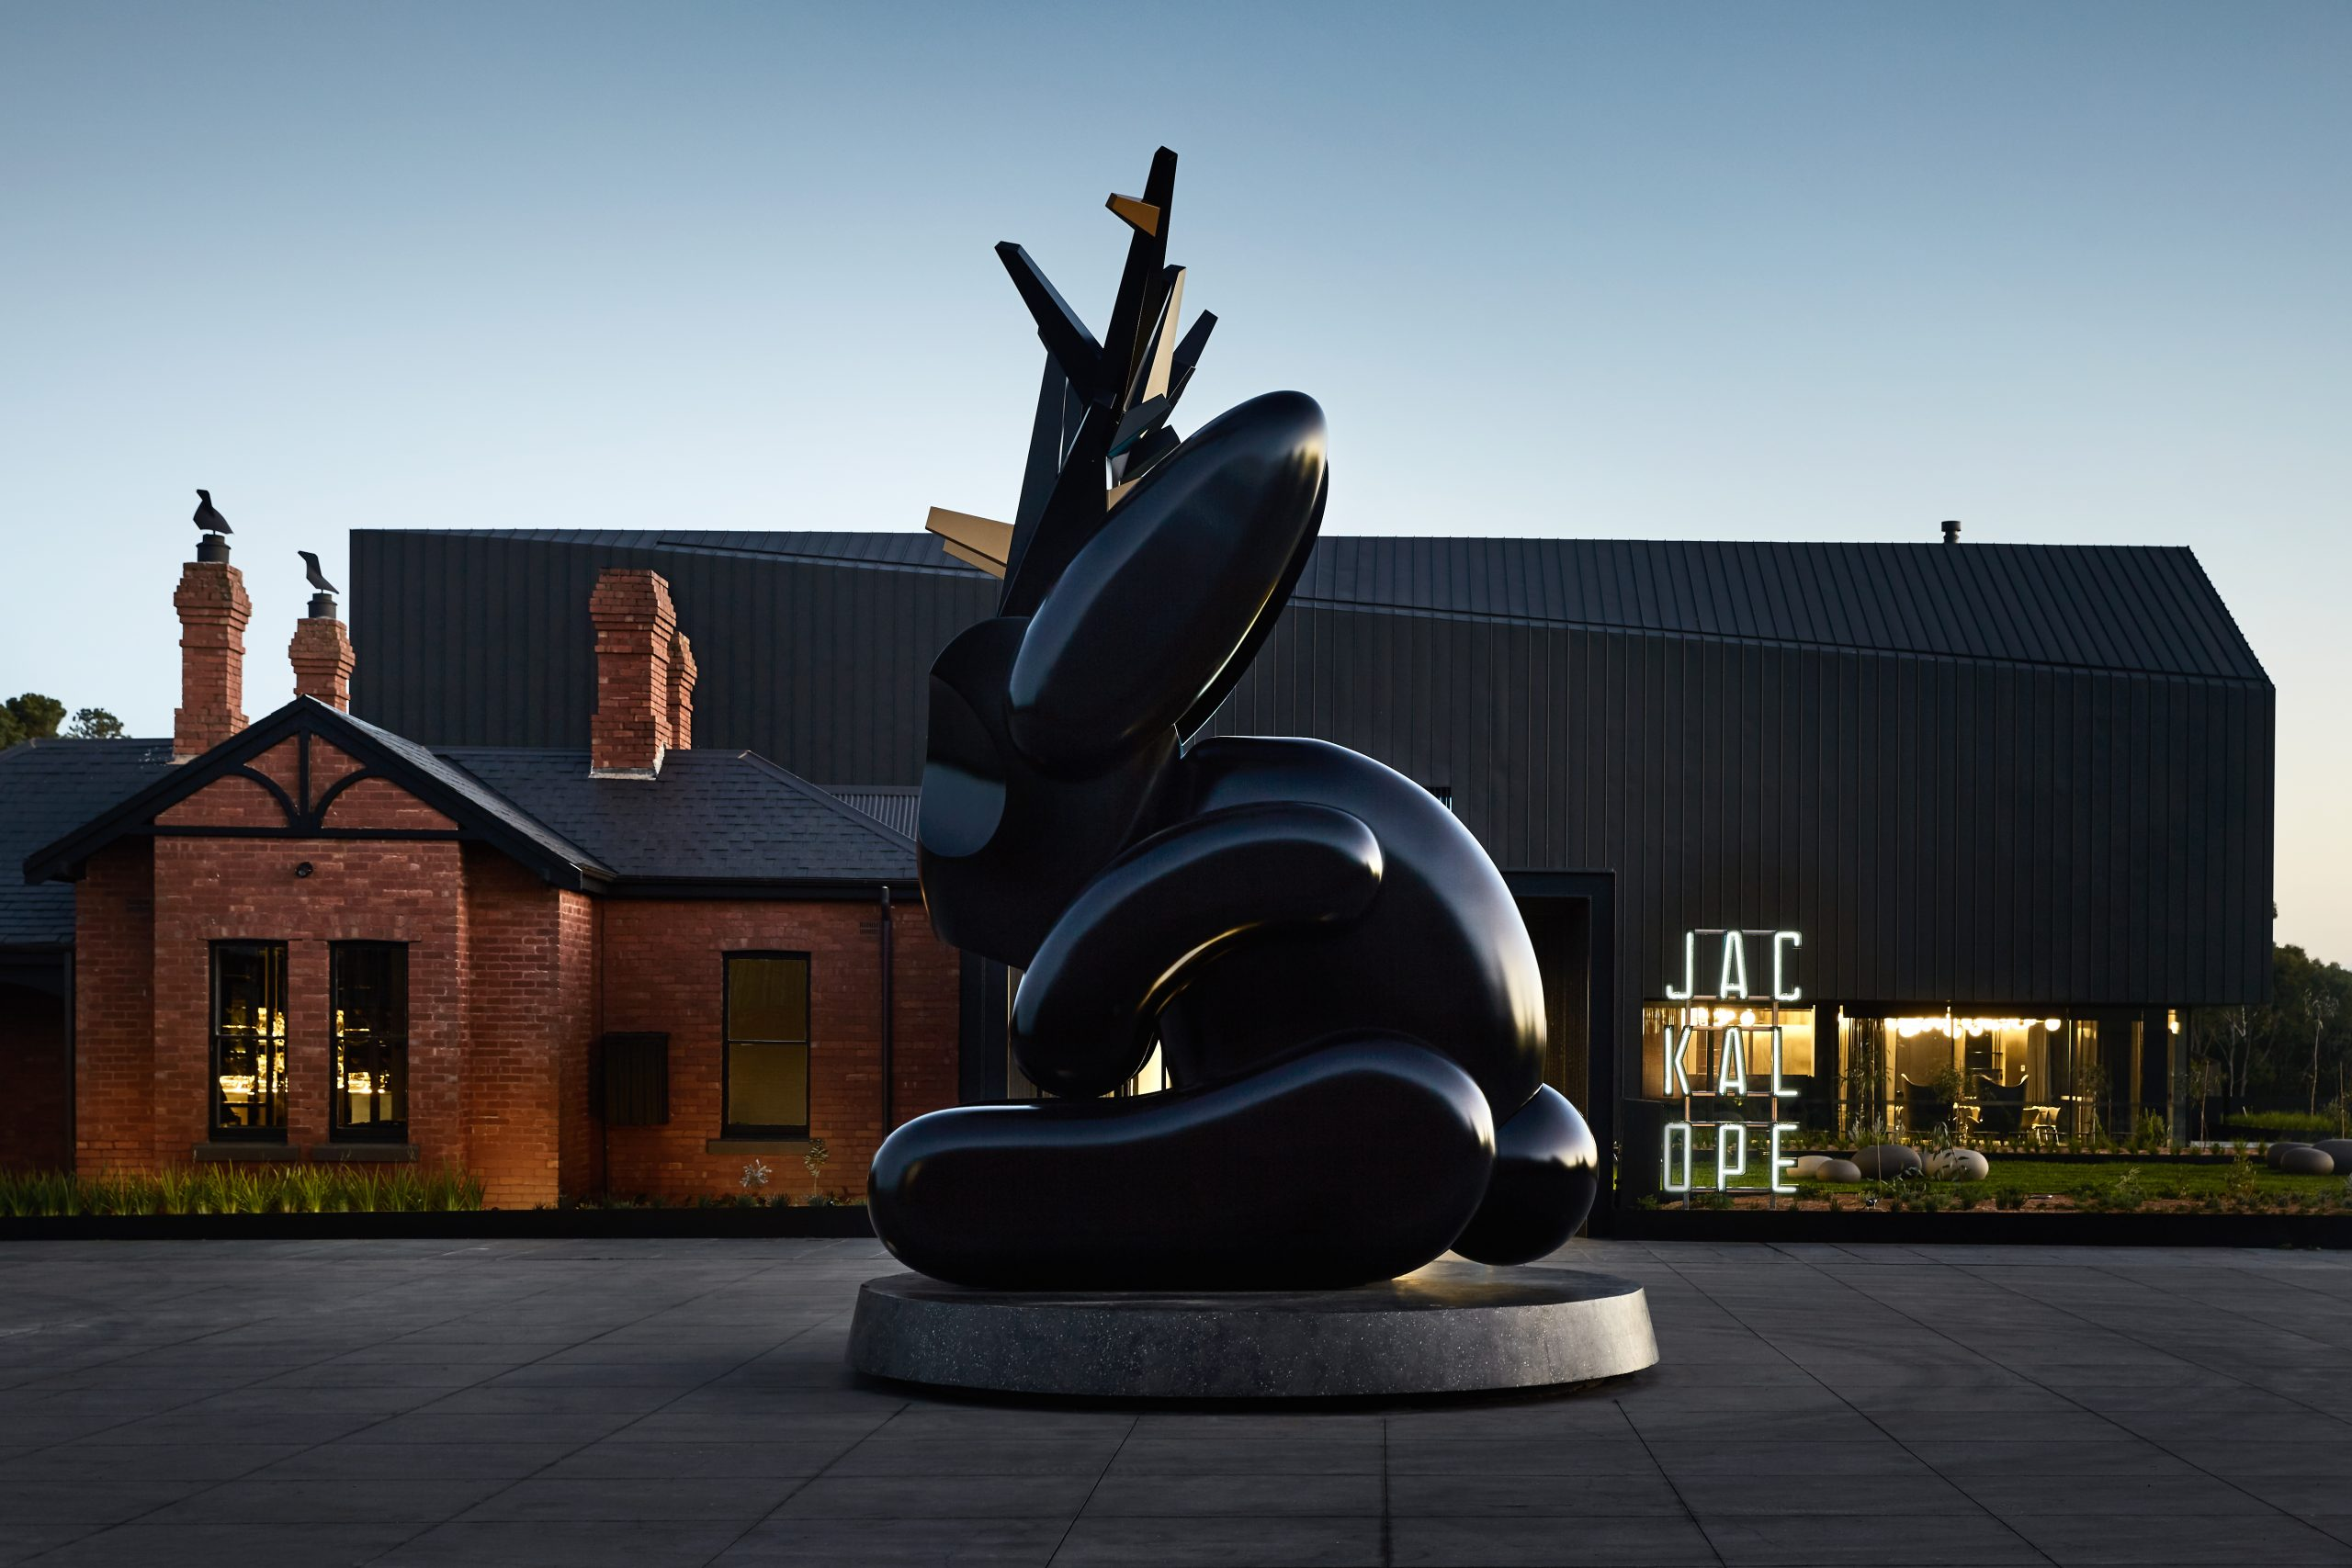 Statue of a giant jackalope in Melbourne